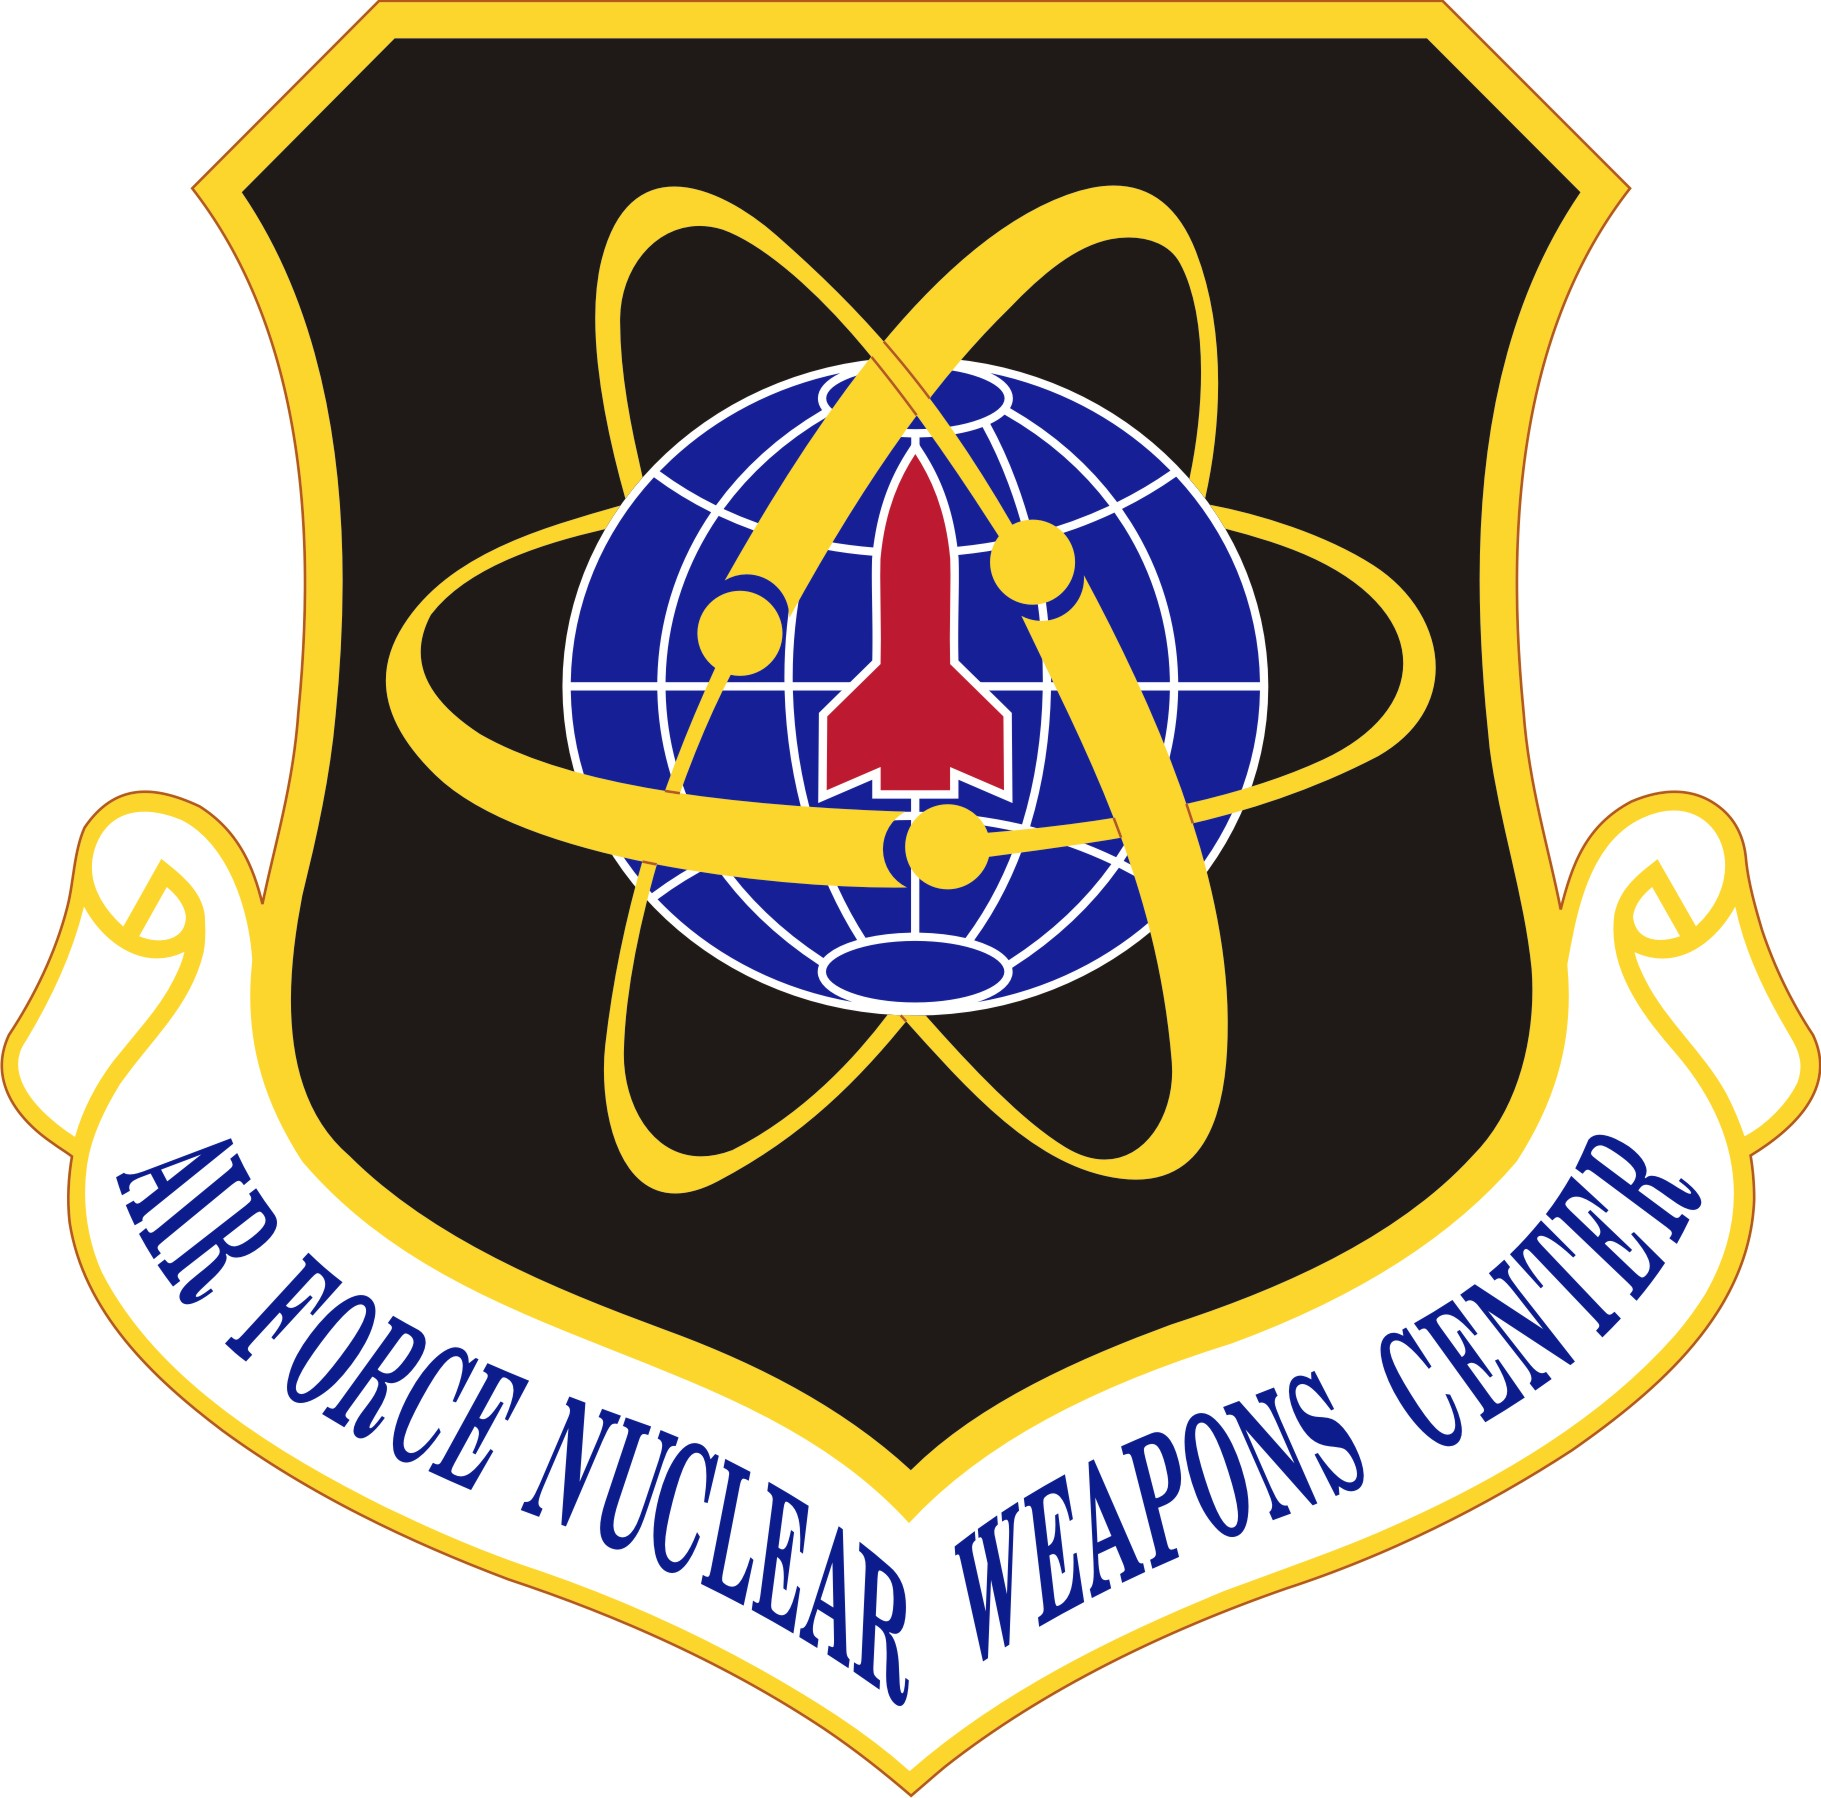 Air Force Nuclear Weapons Center, Intercontinental Ballistic